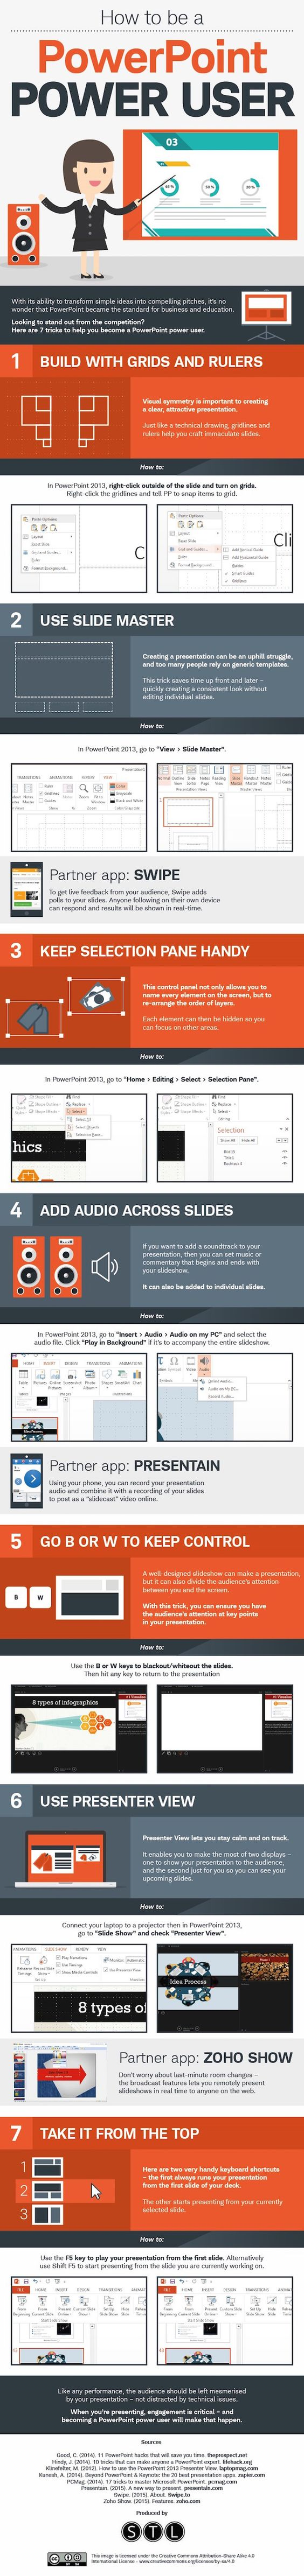 How to be a powerpoint power user. Good tips. Building with grids, hiding slide when you want audience attention, etc.